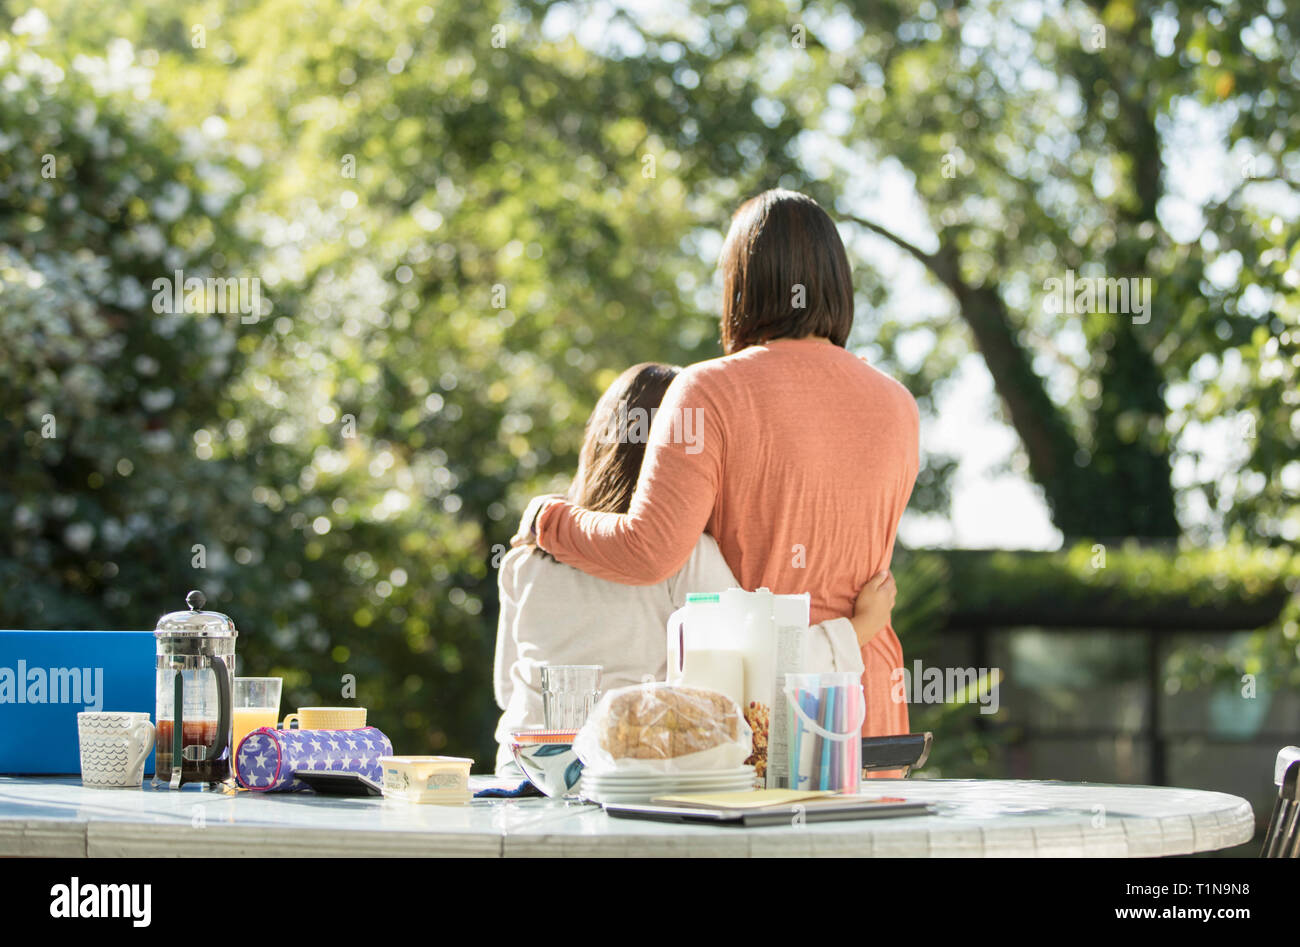 Affectionate mother and daughter on sunny morning patio Stock Photo